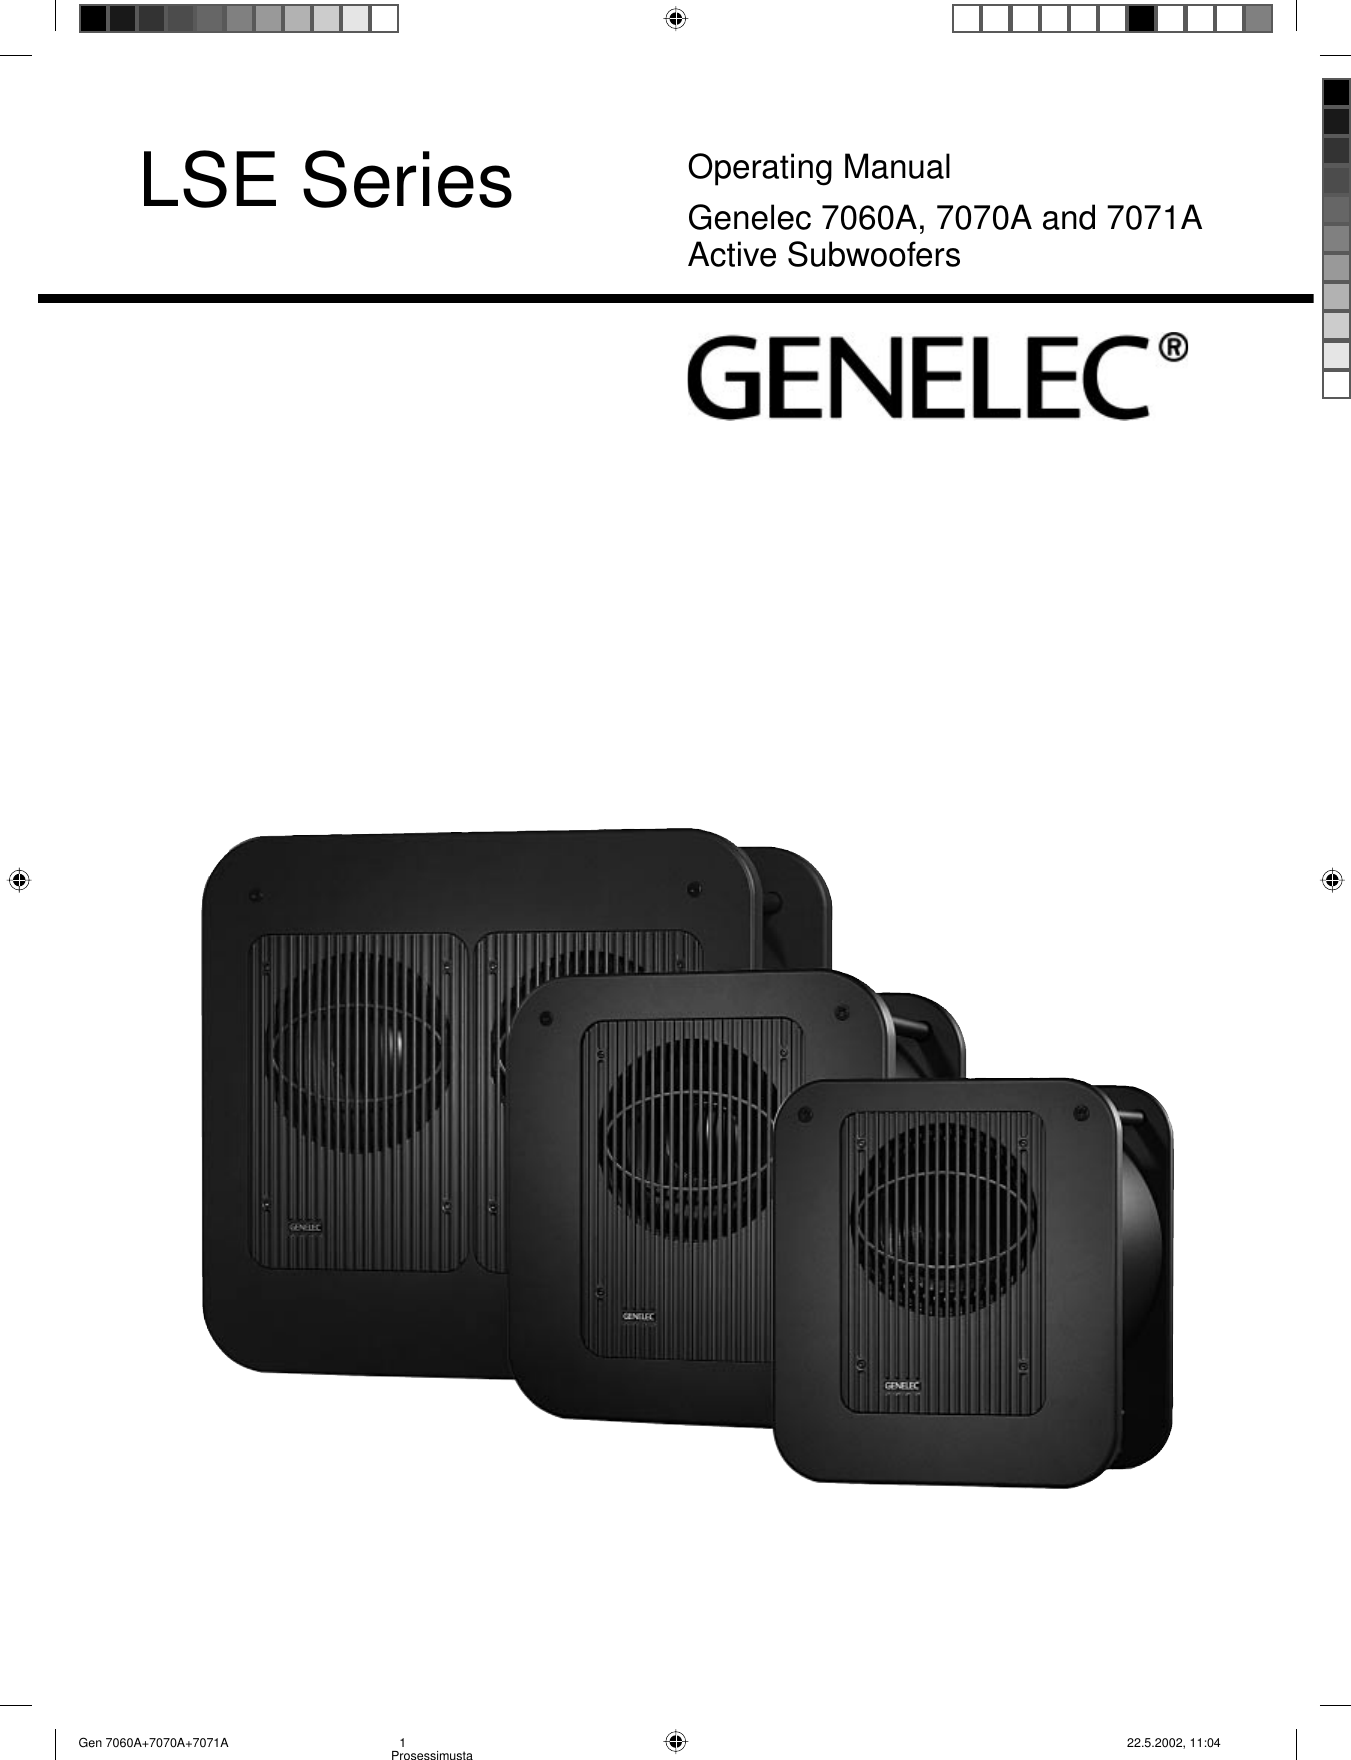 Genelec 7060a Users Manual Gen 7070a 7071a Pin Subwoofer Filter Crossover 11 90 Hz Frequency Circuit Free On